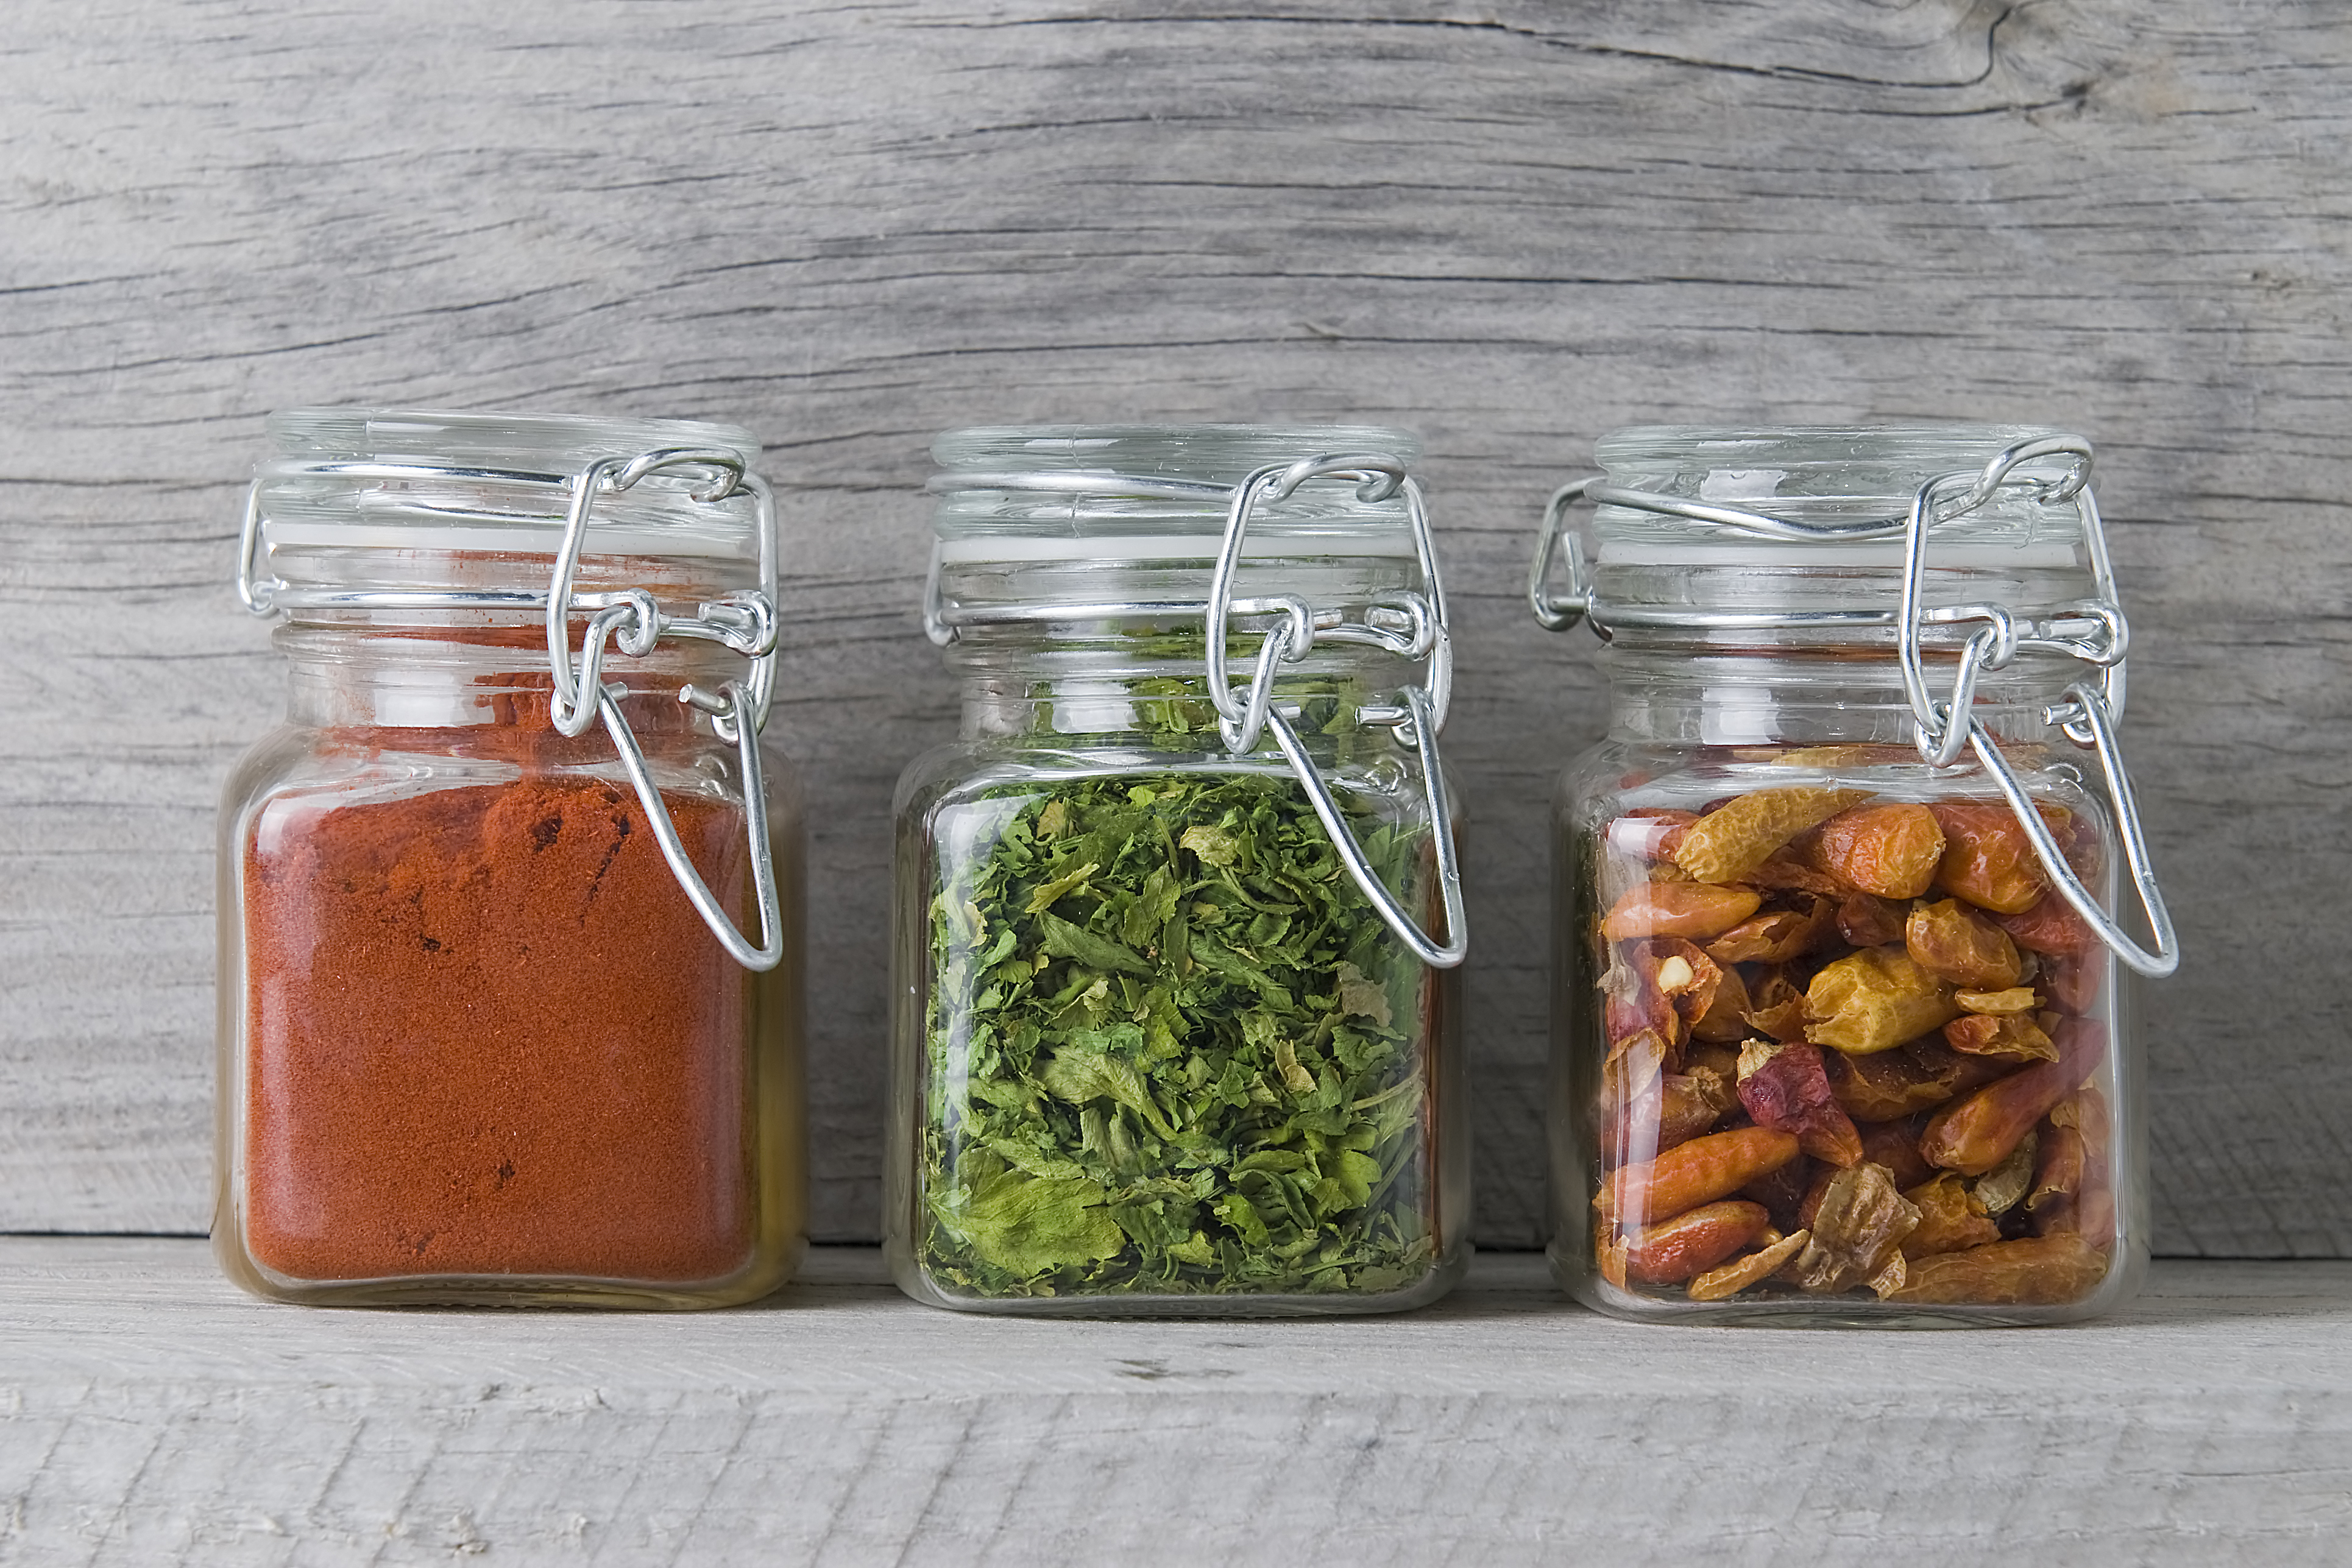 Three jars with paprika, parsley and chilli on an old wooden spice rack.